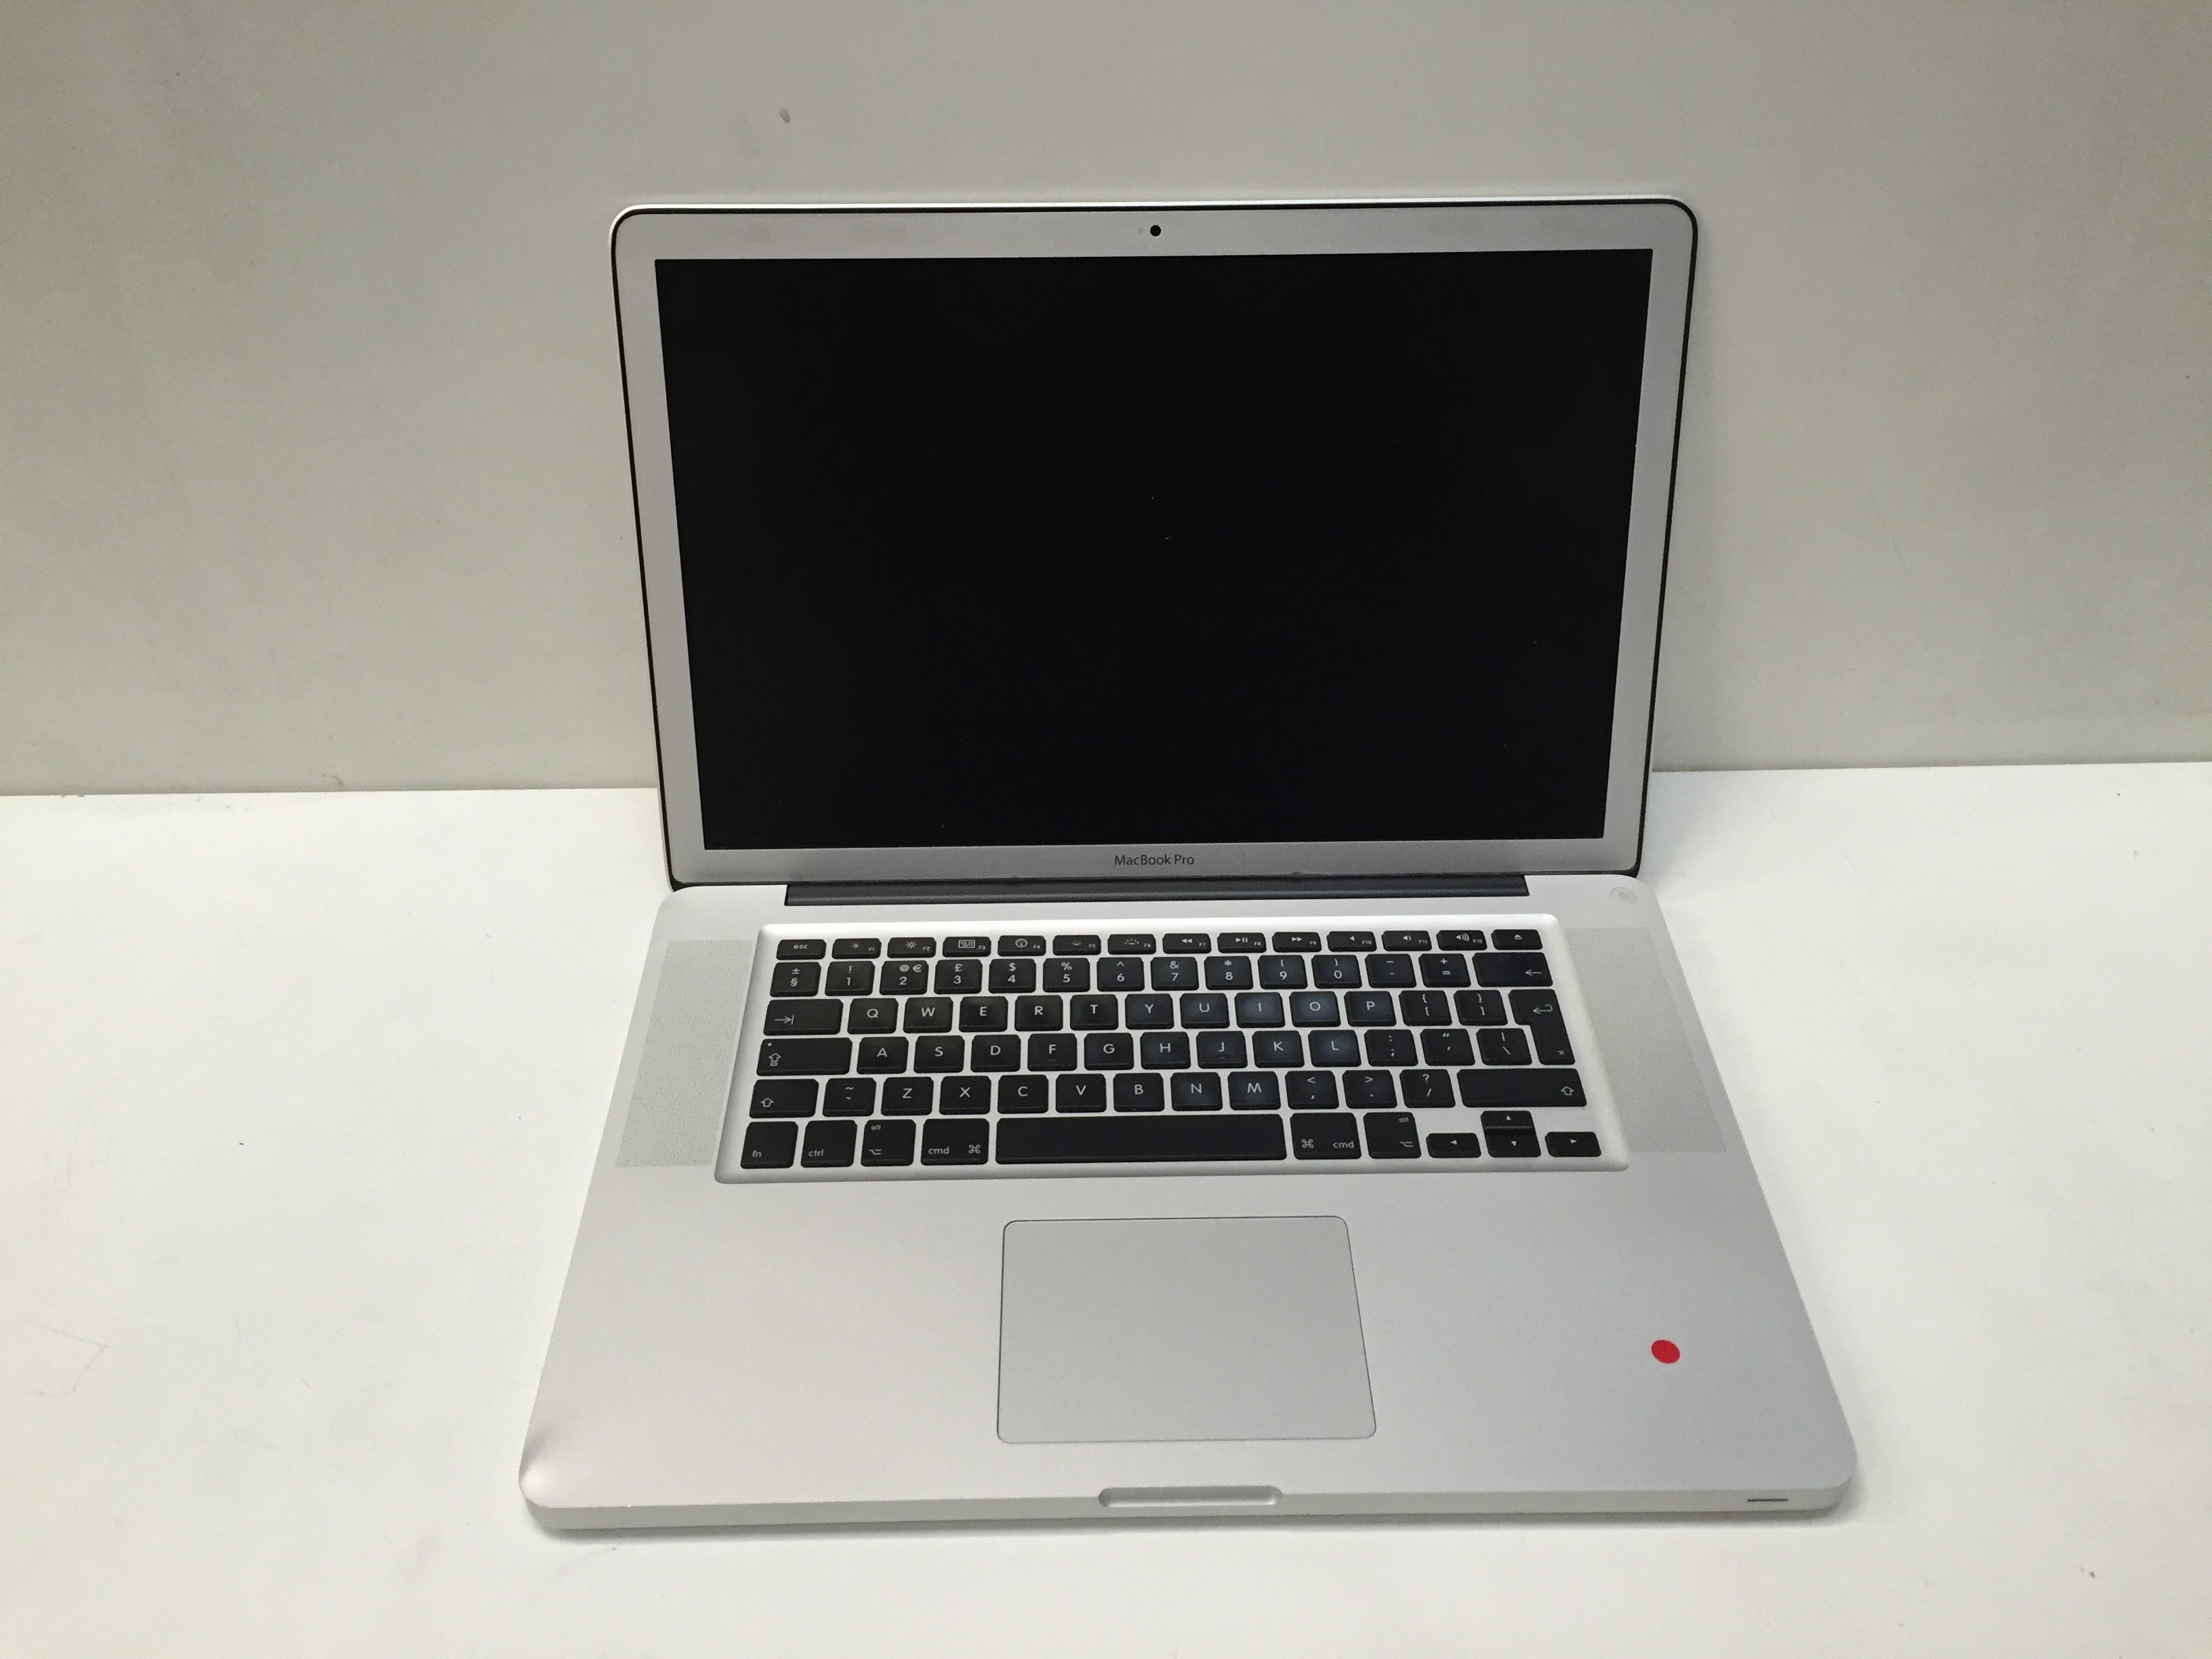 Apple MacBook Pro 15inch Core 2 Duo, 4GB RAM, 500GB HDD A1286